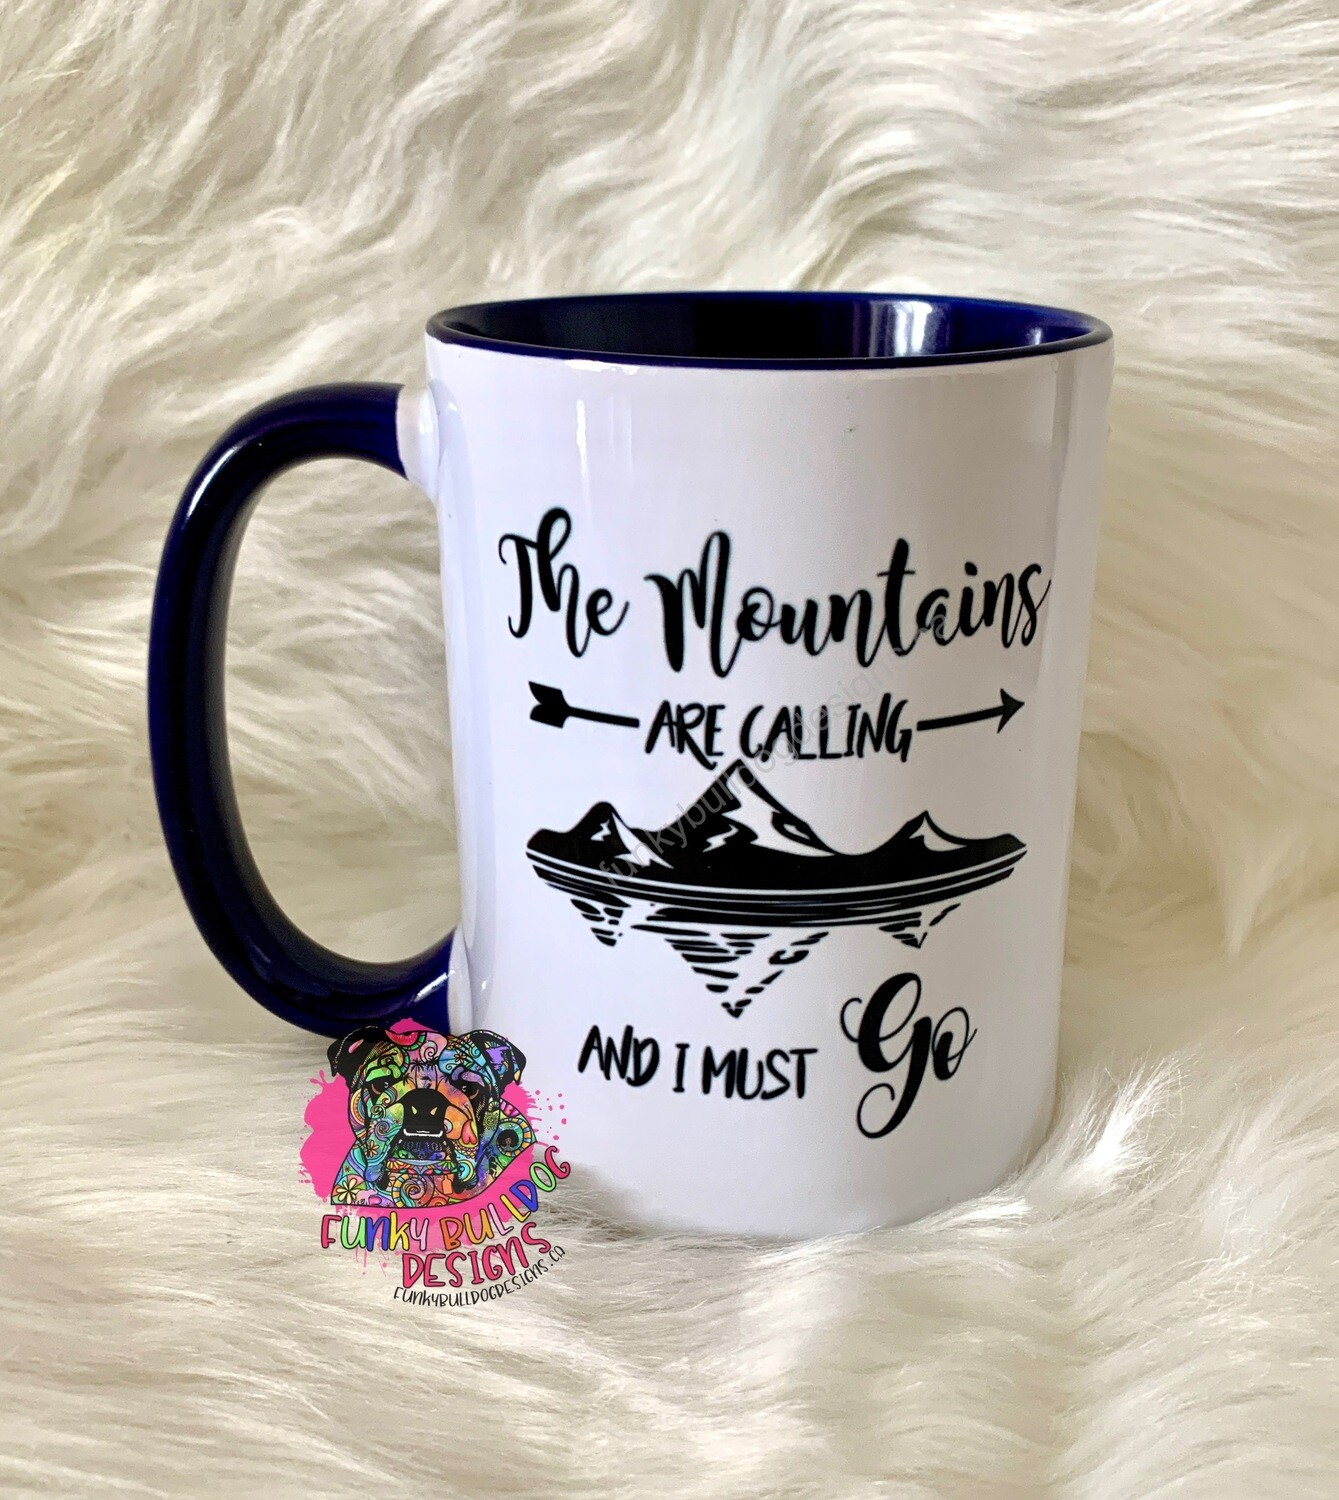 15oz Ceramic Mug (Navy Blue handle) - The Mountains are calling (camping boating design)